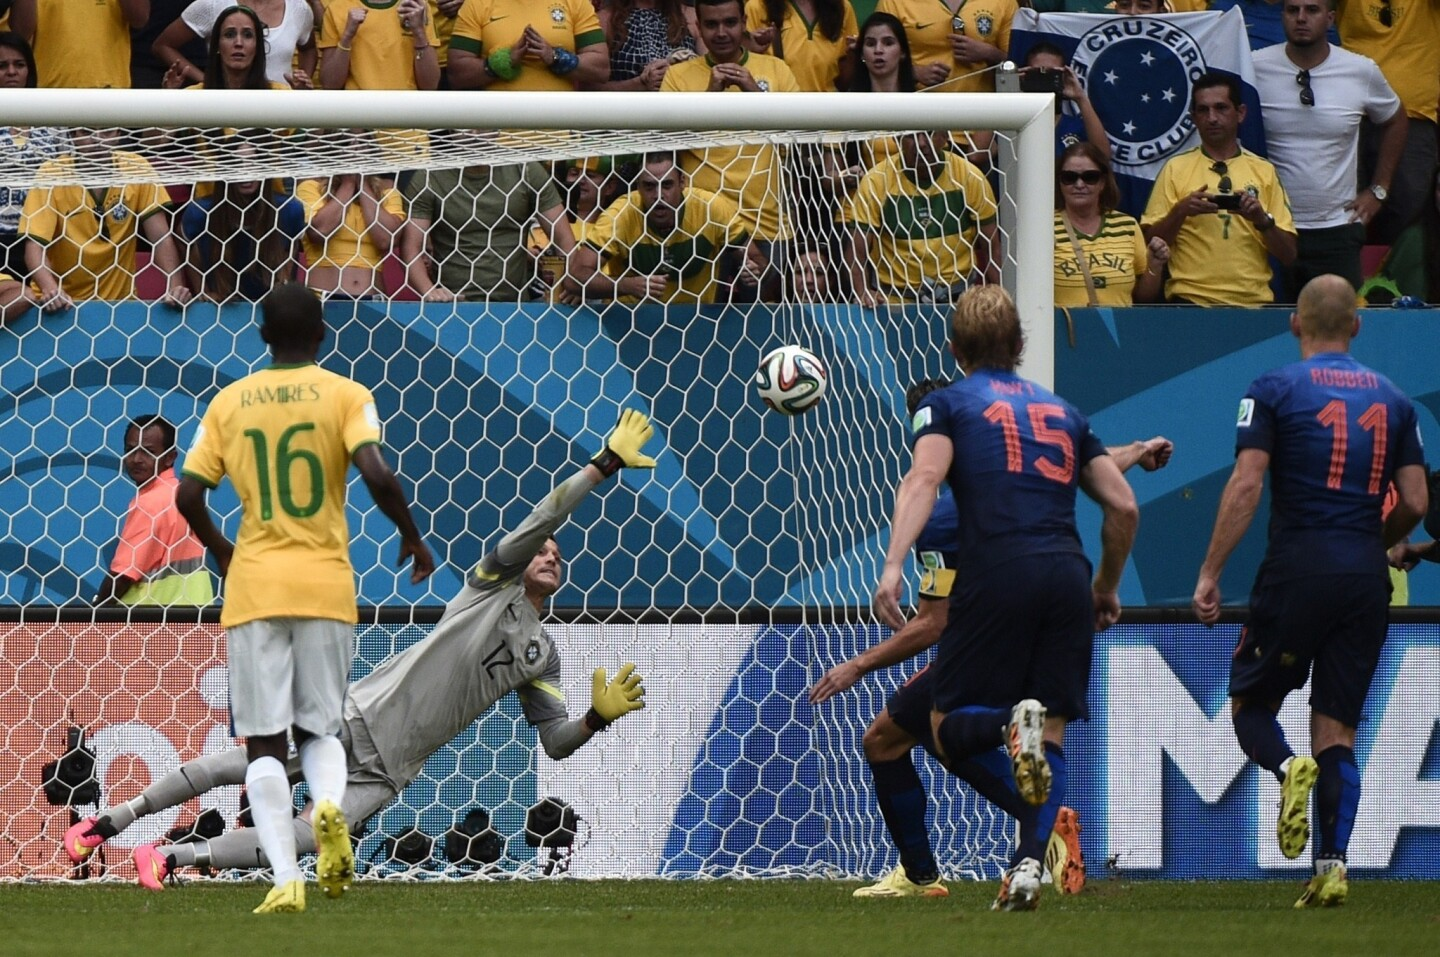 Brazil goalkeeper Julio Cesar can't stop a penalty kick by the Netherlands' Robin van Persie from finding the back of the net during the Netherlands' 3-0 win in the third-place match of the 2014 World Cup.